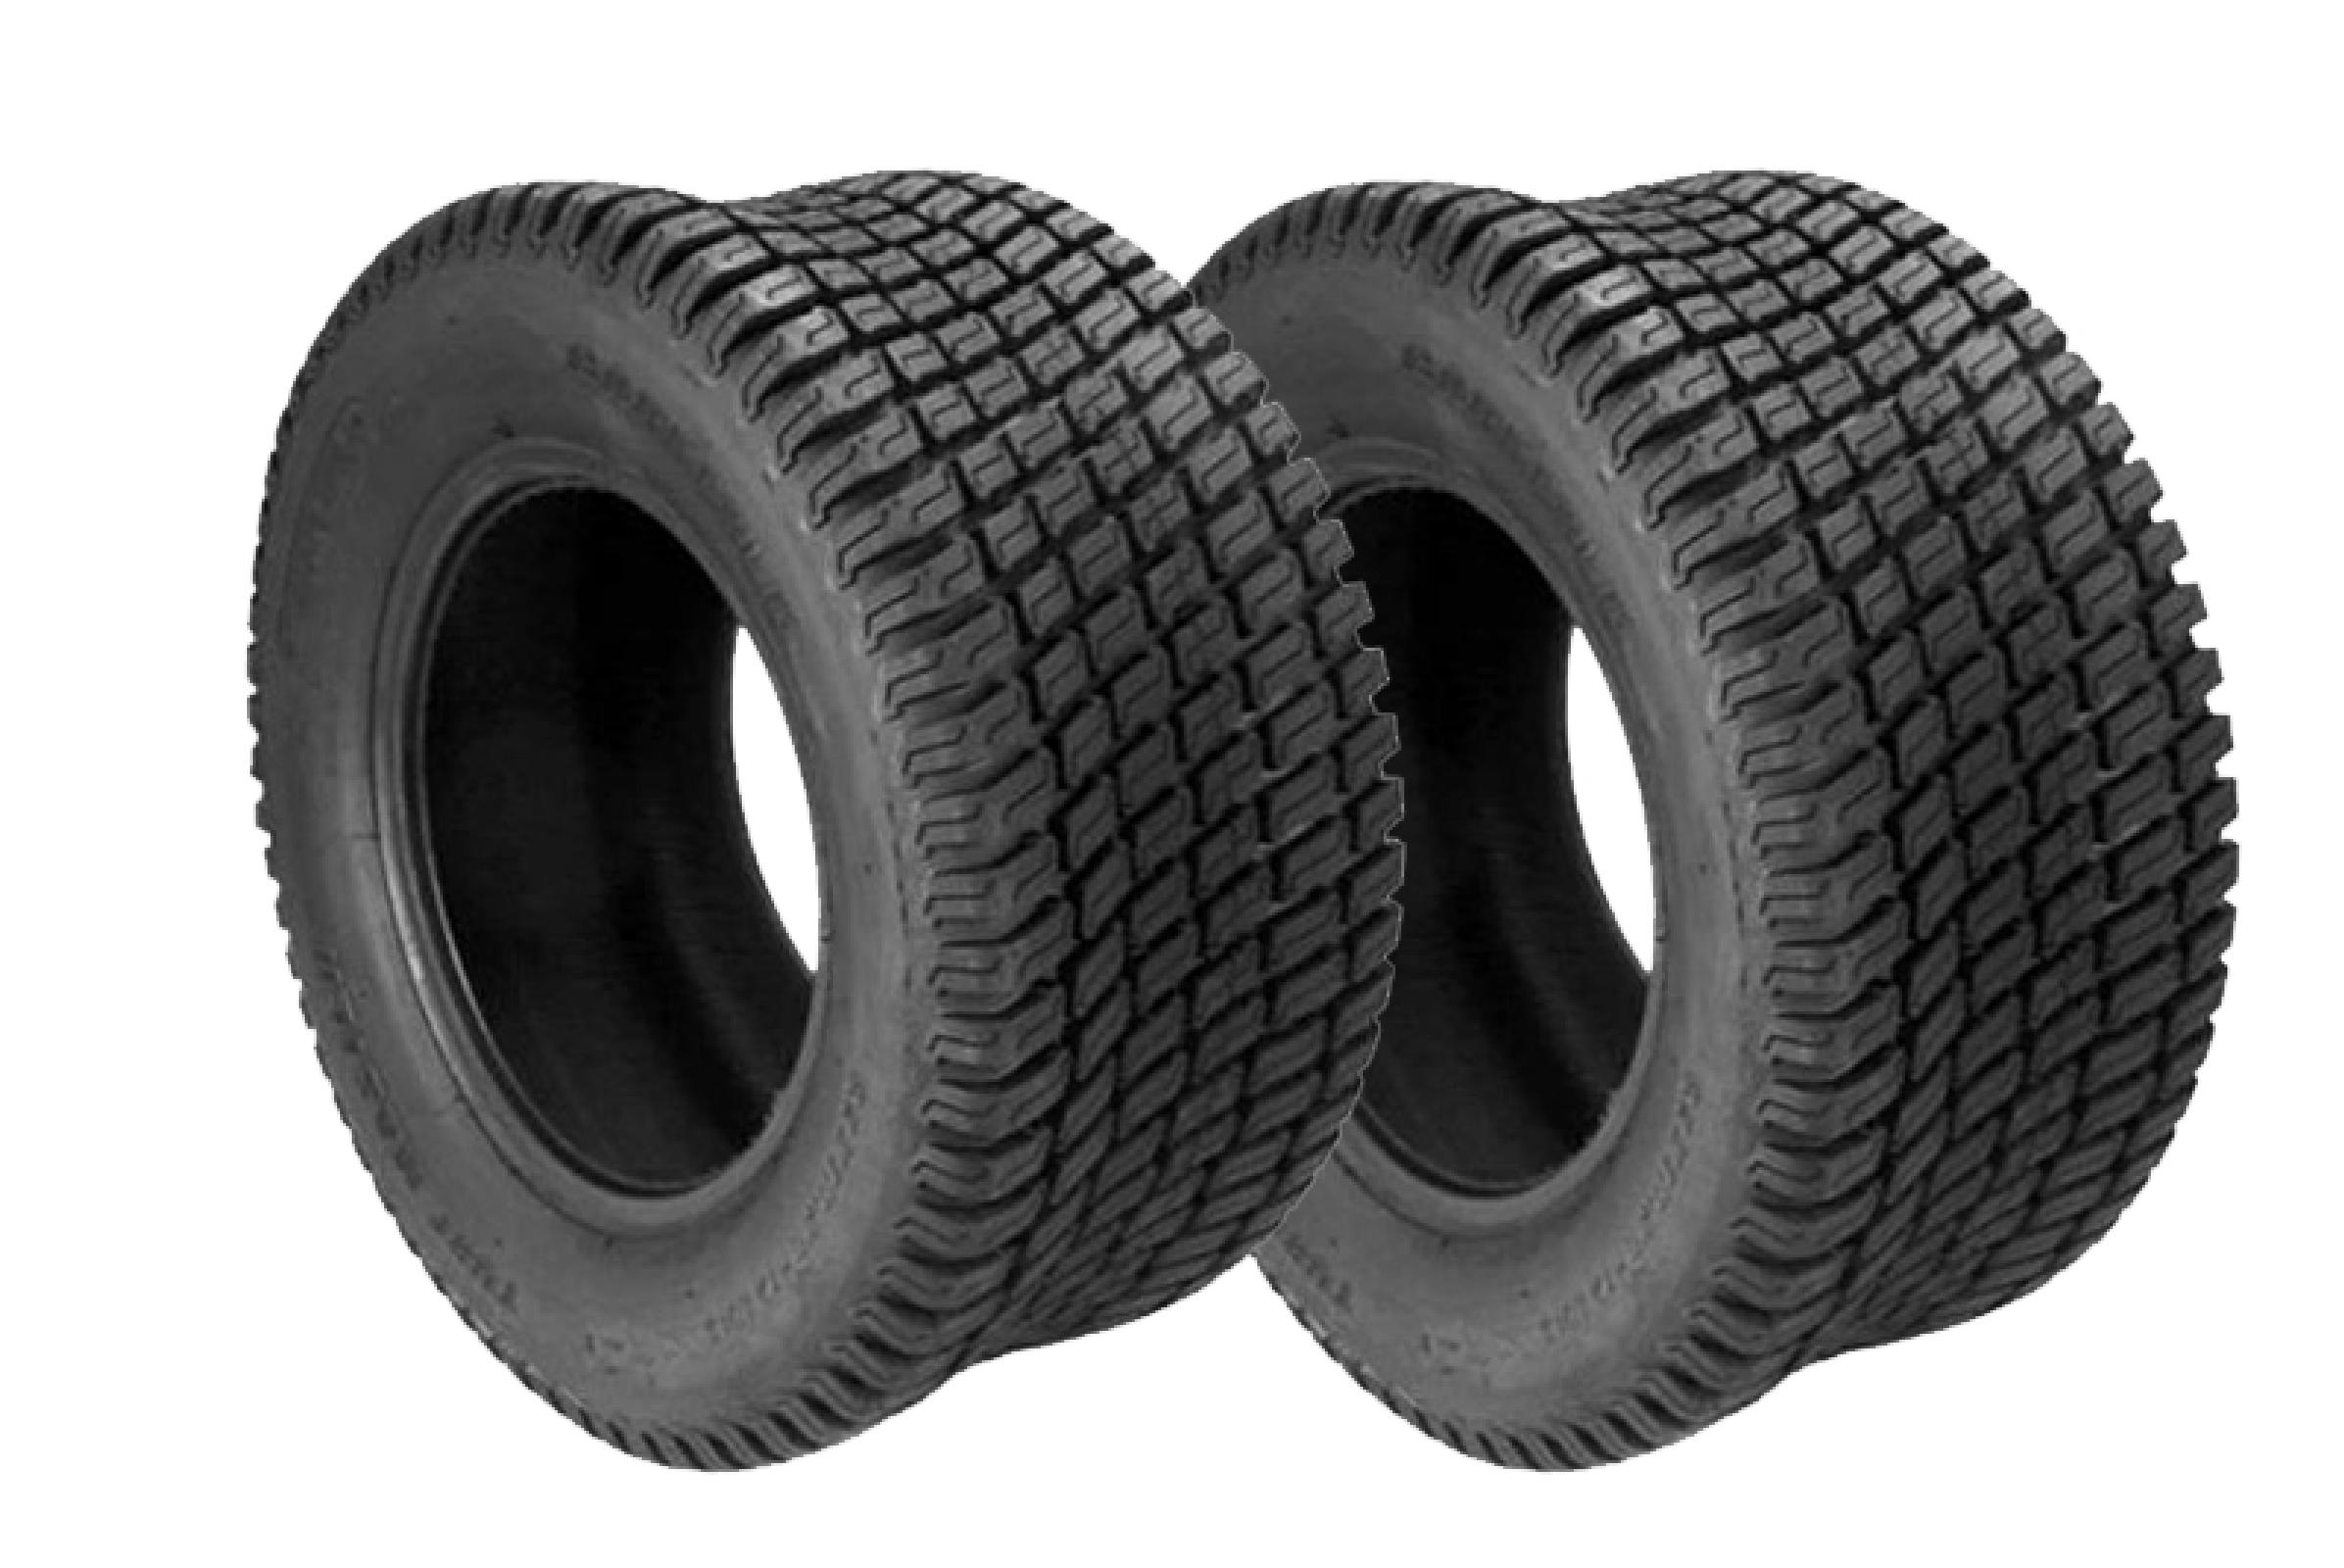 2 Raisman 80 04 241 turf master 24X12.00-12 4 ply tires